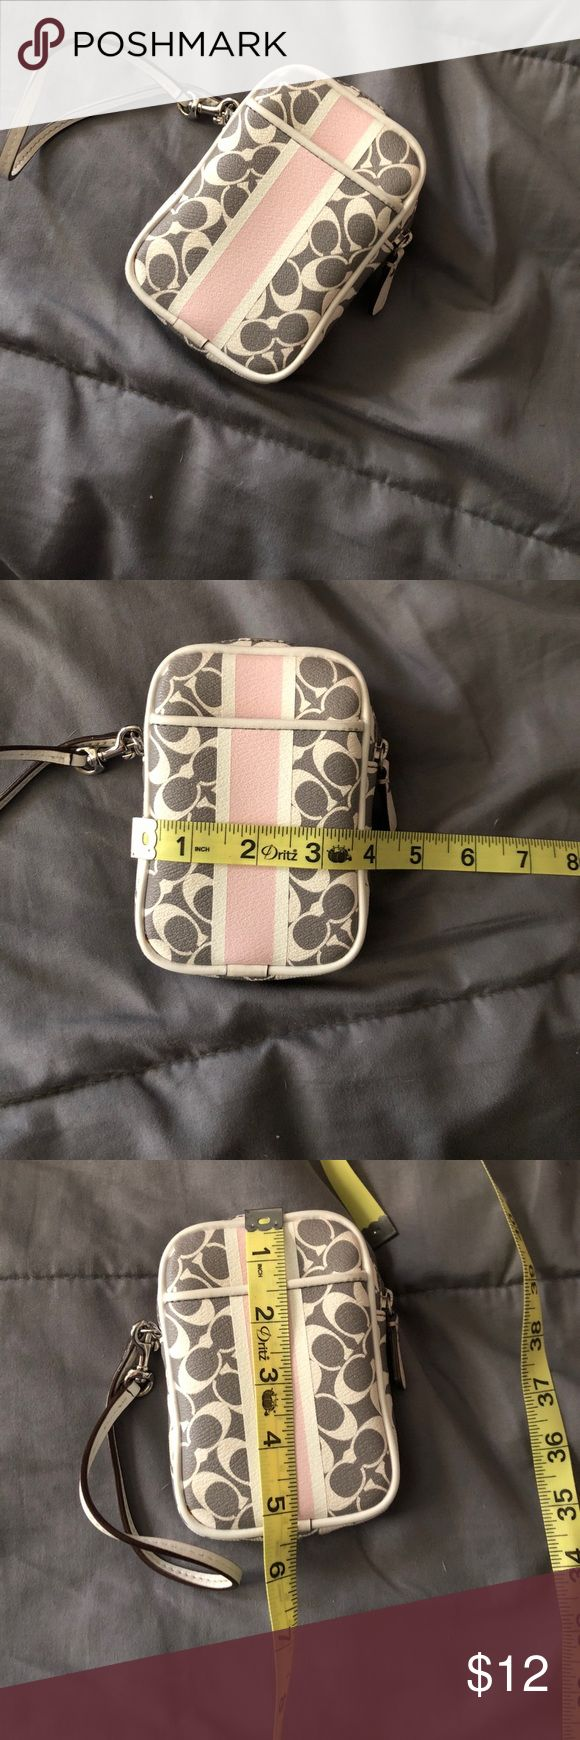 Wallet/ cell phone carrier Pink grey and white wallet/cell phone case. Not sure if this is real, price depicts that Bags Clutches & Wristlets